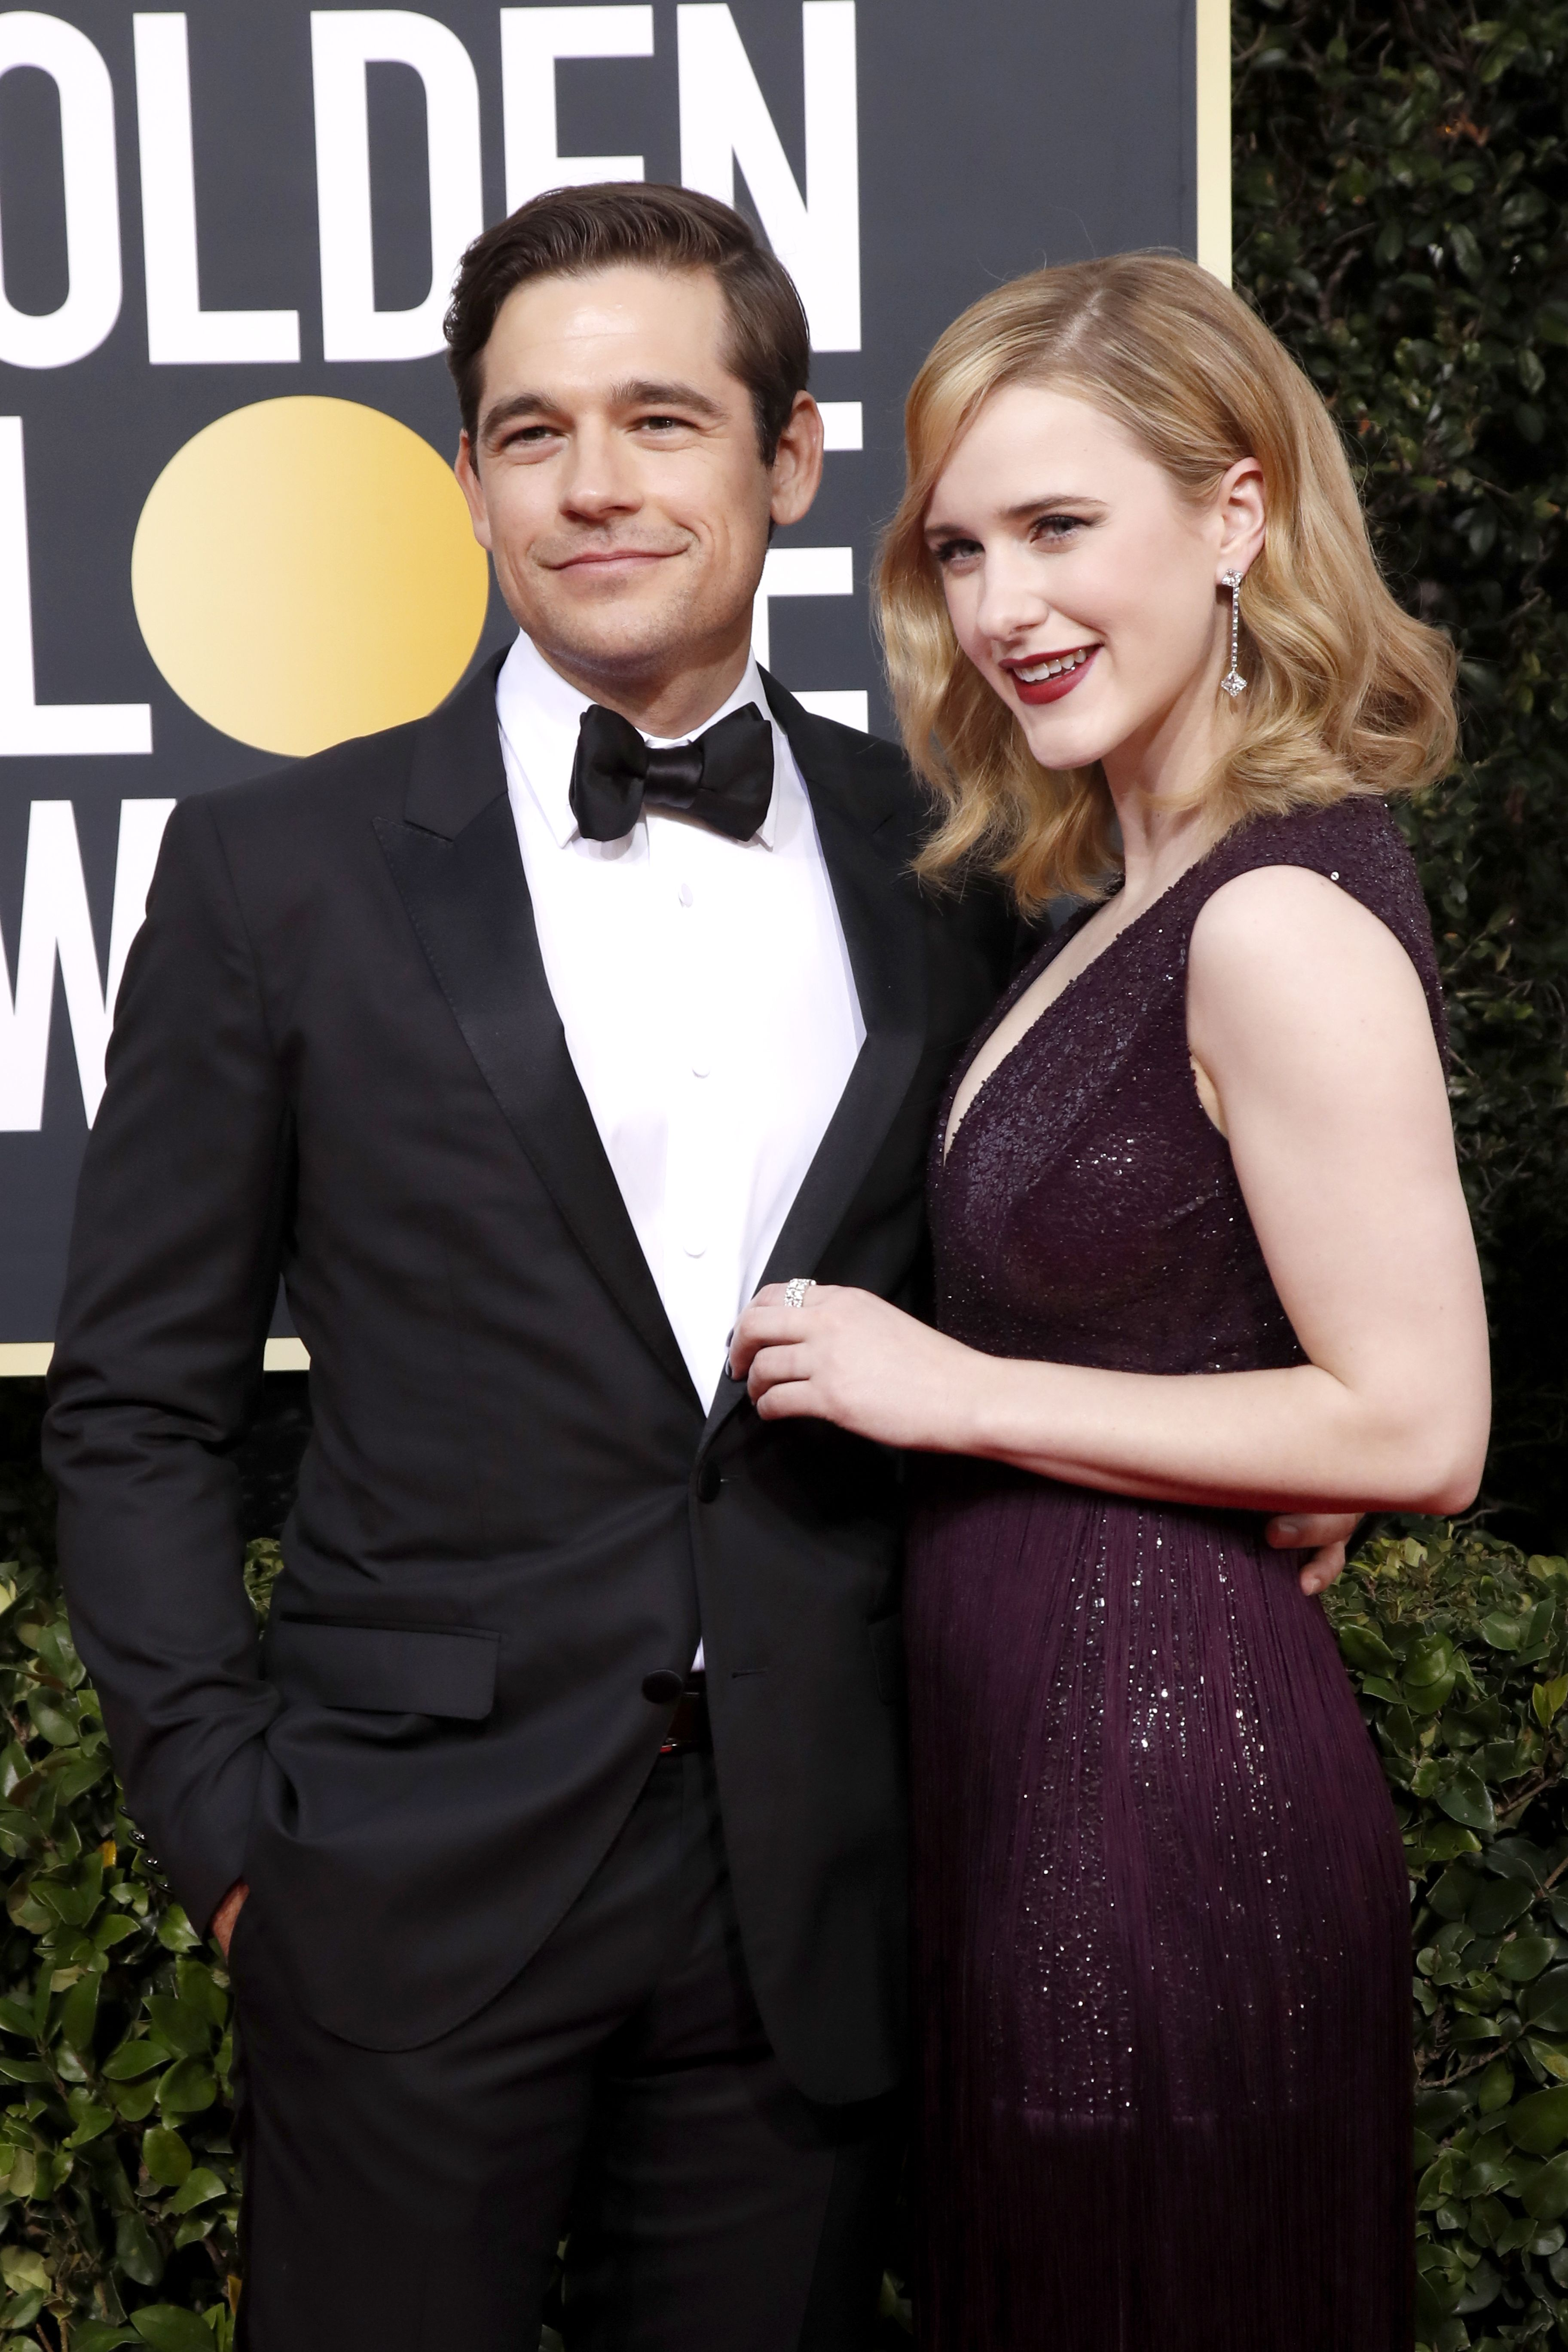 Rachel Brosnahan and Jason Ralph arrive for the 77th annual Golden Globe Awards ceremony at the Beverly Hilton Hotel, in Beverly Hills, California, USA, 05 January 2020.Arrivals - 77th Golden Globe Awards, Beverly Hills, USA - 05 Jan 2020